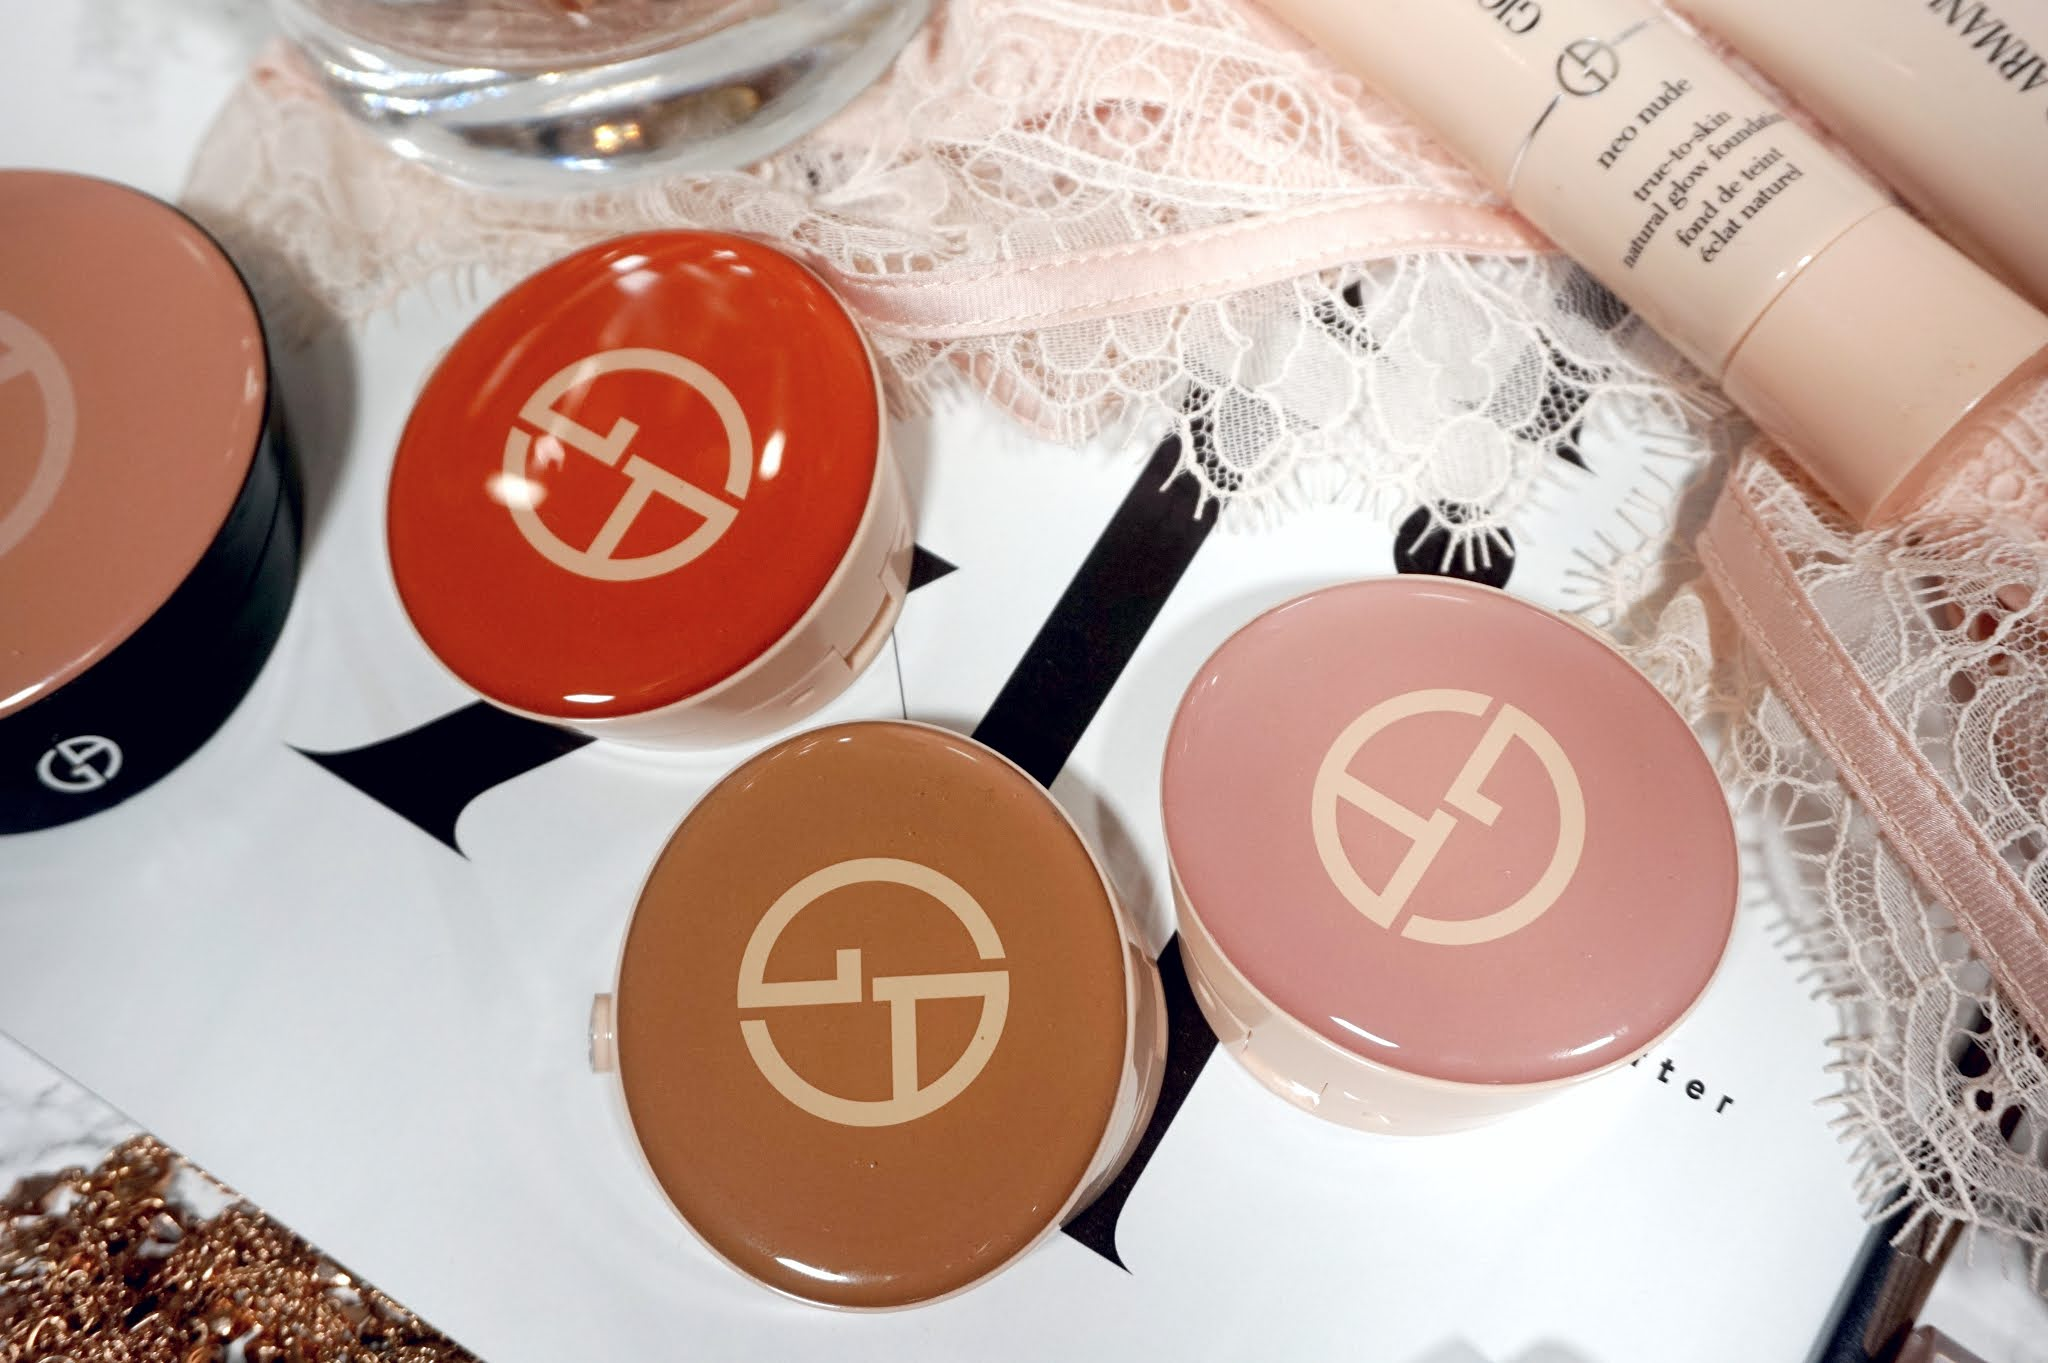 Giorgio Armani Neo Nude Melting Color Balm Review and Swatches